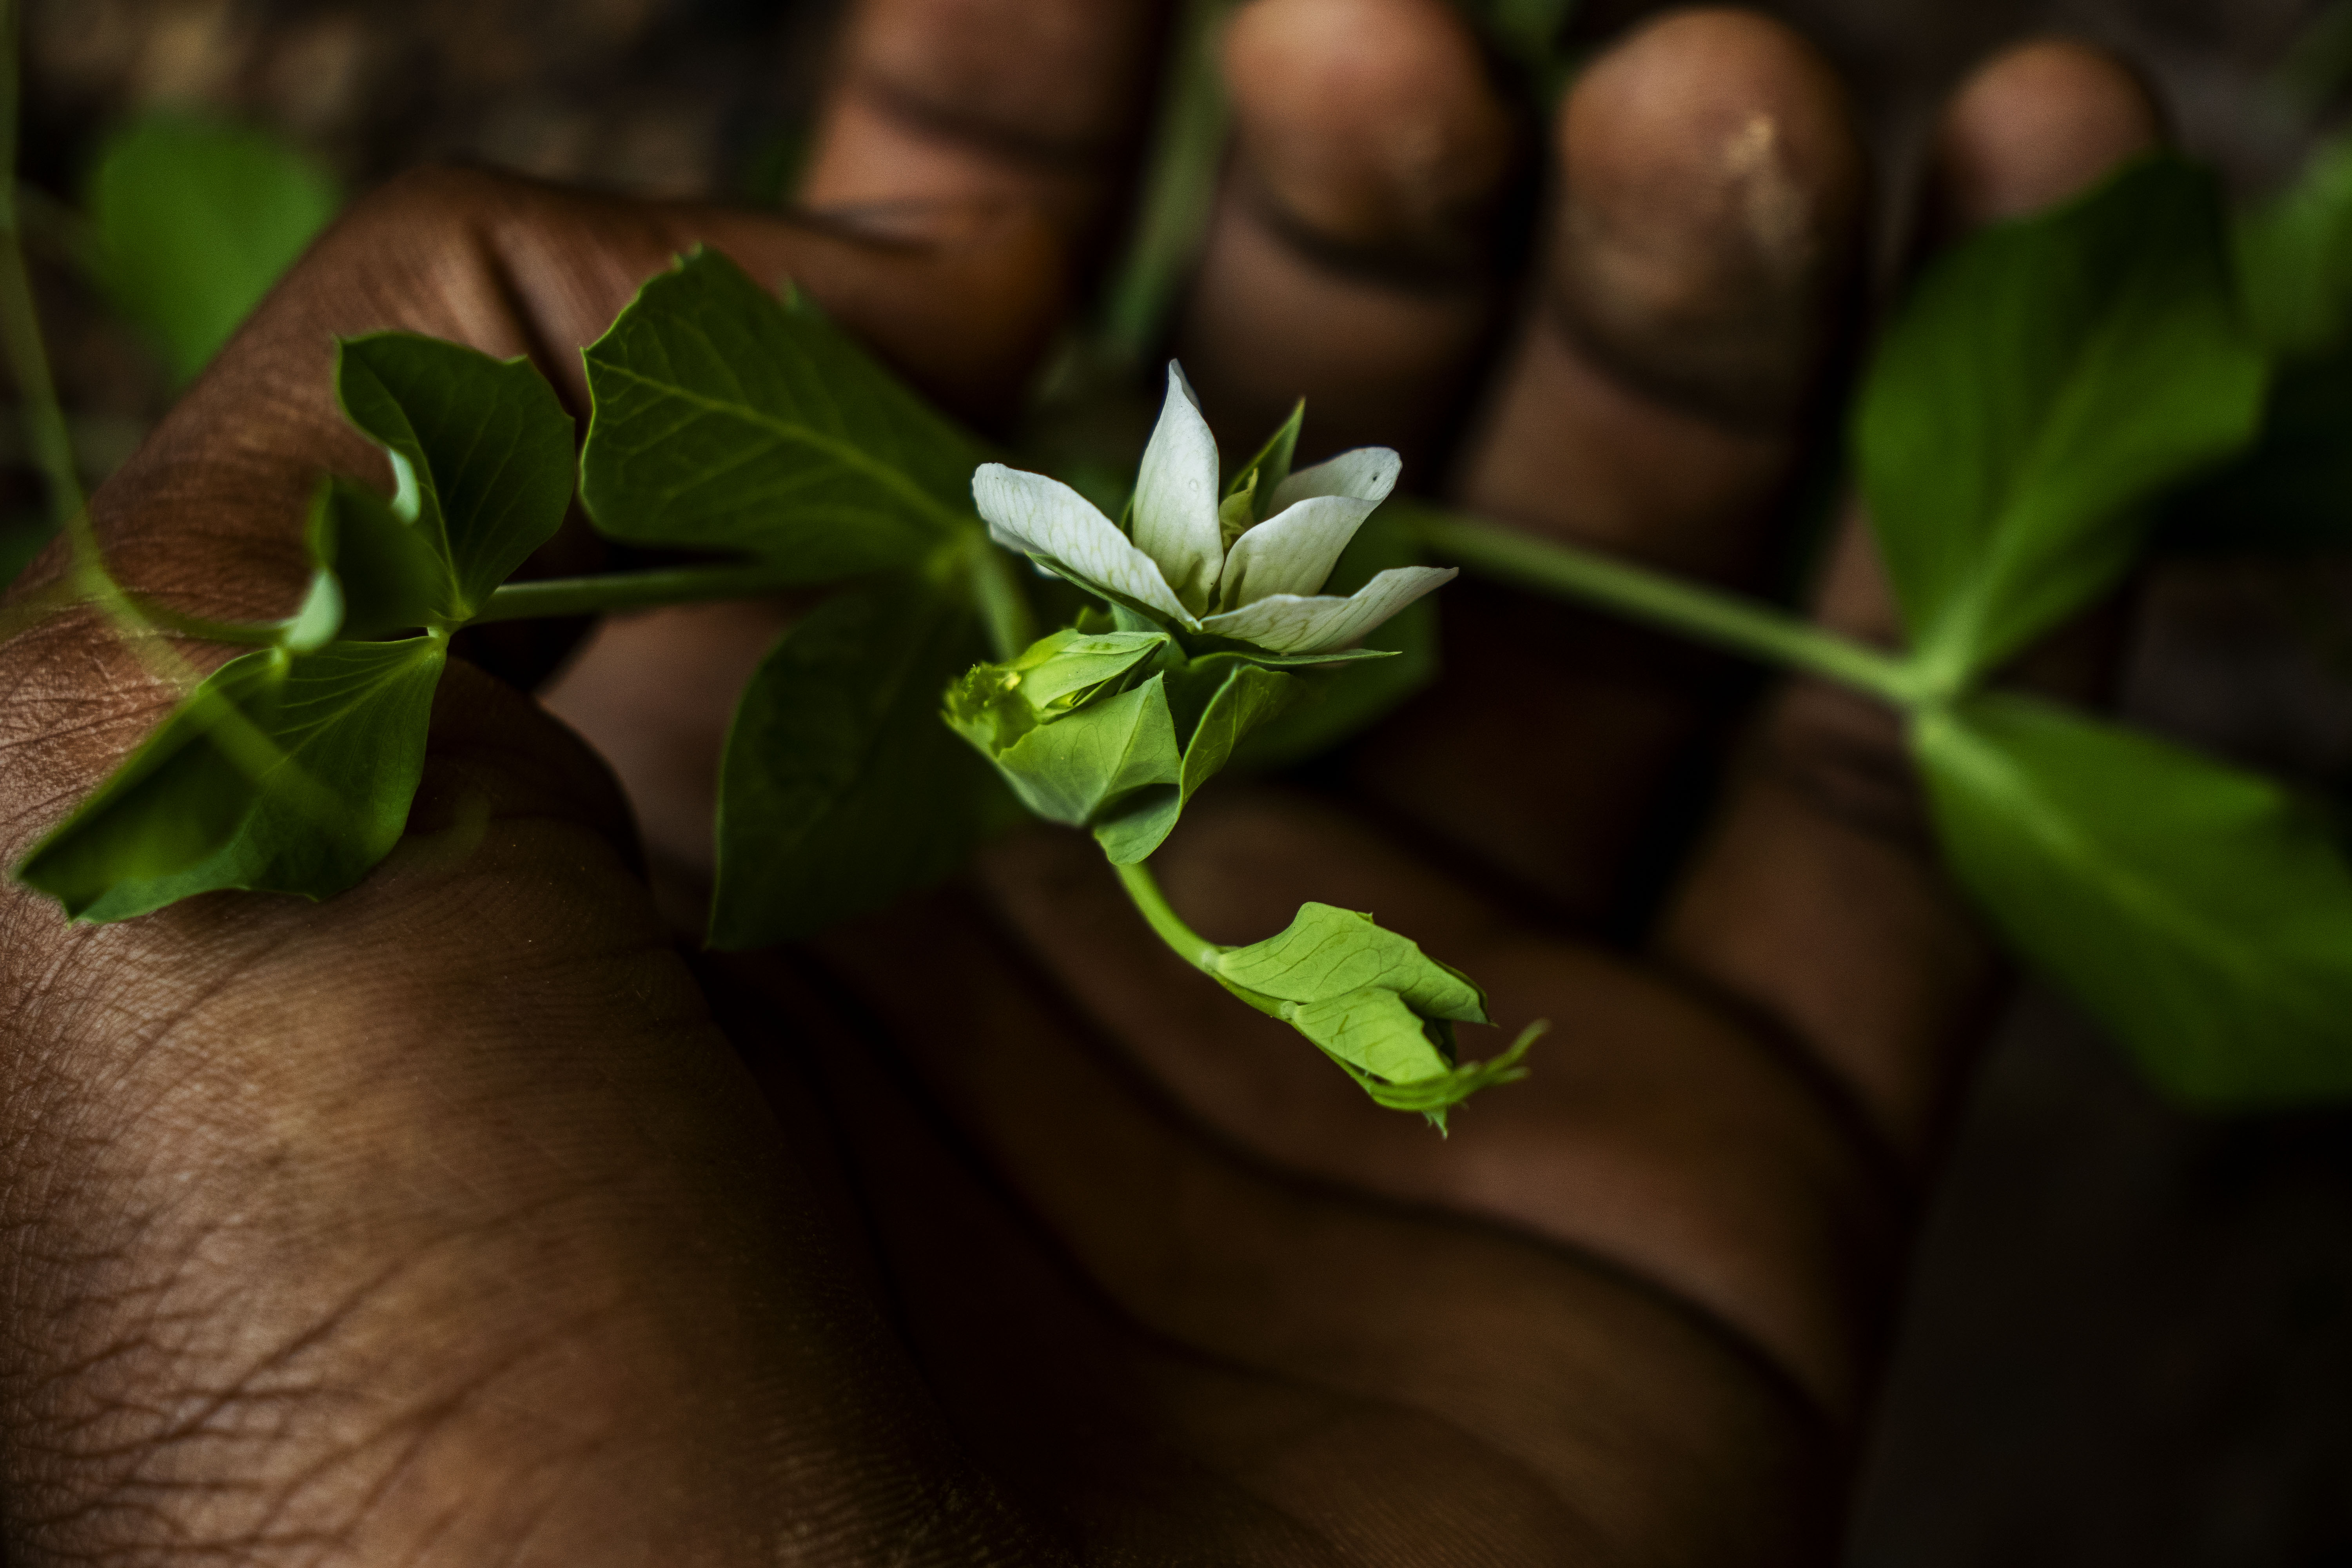 White-petaled Flower on Person's Palm